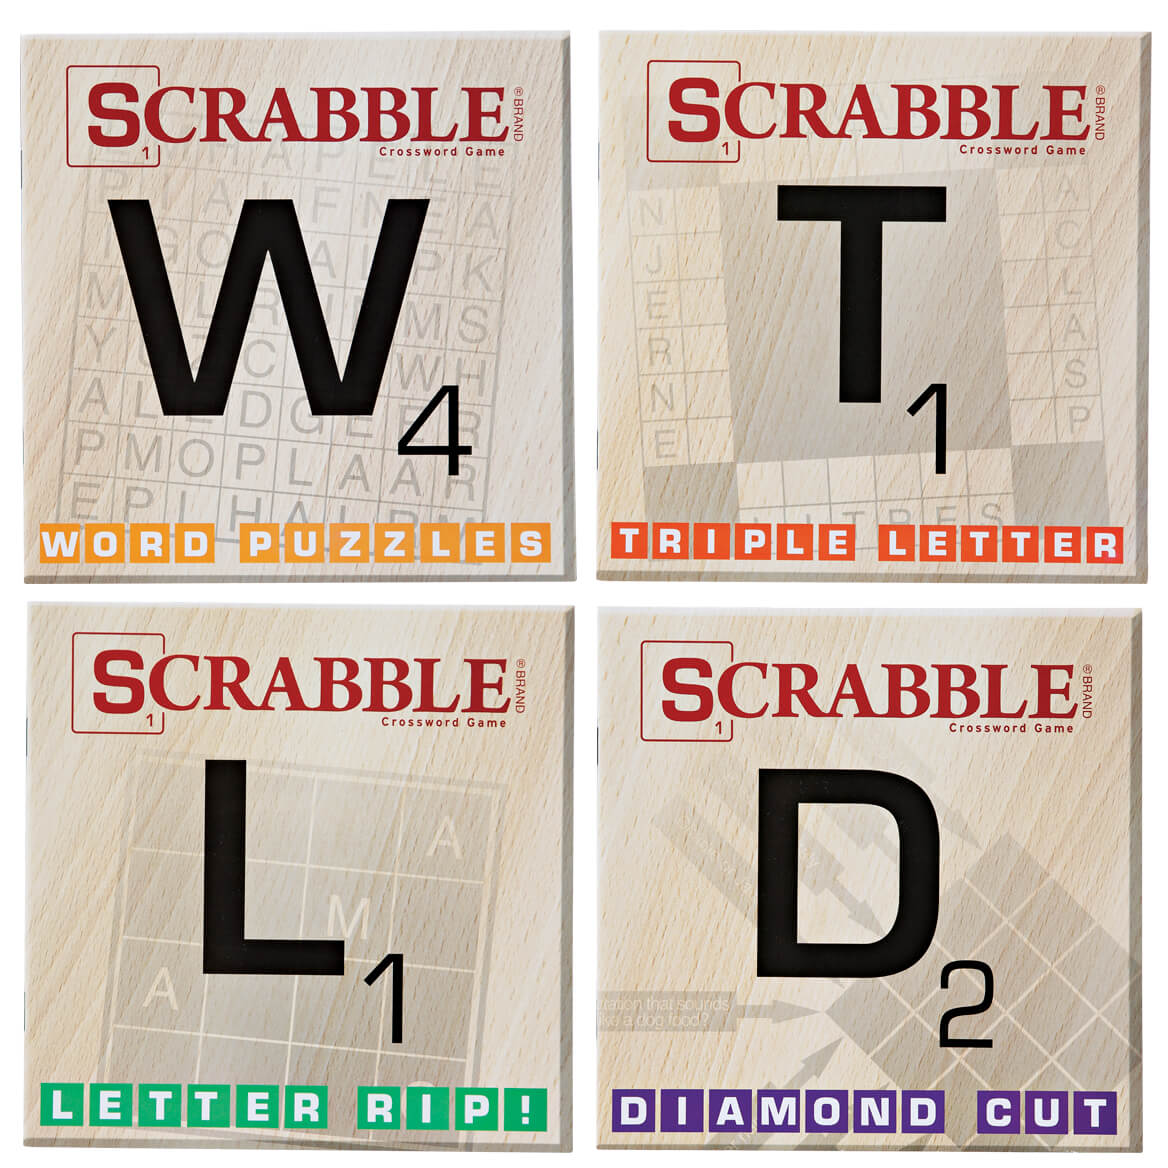 Placard Crossword Sale Hobbies Books Miles Kimball